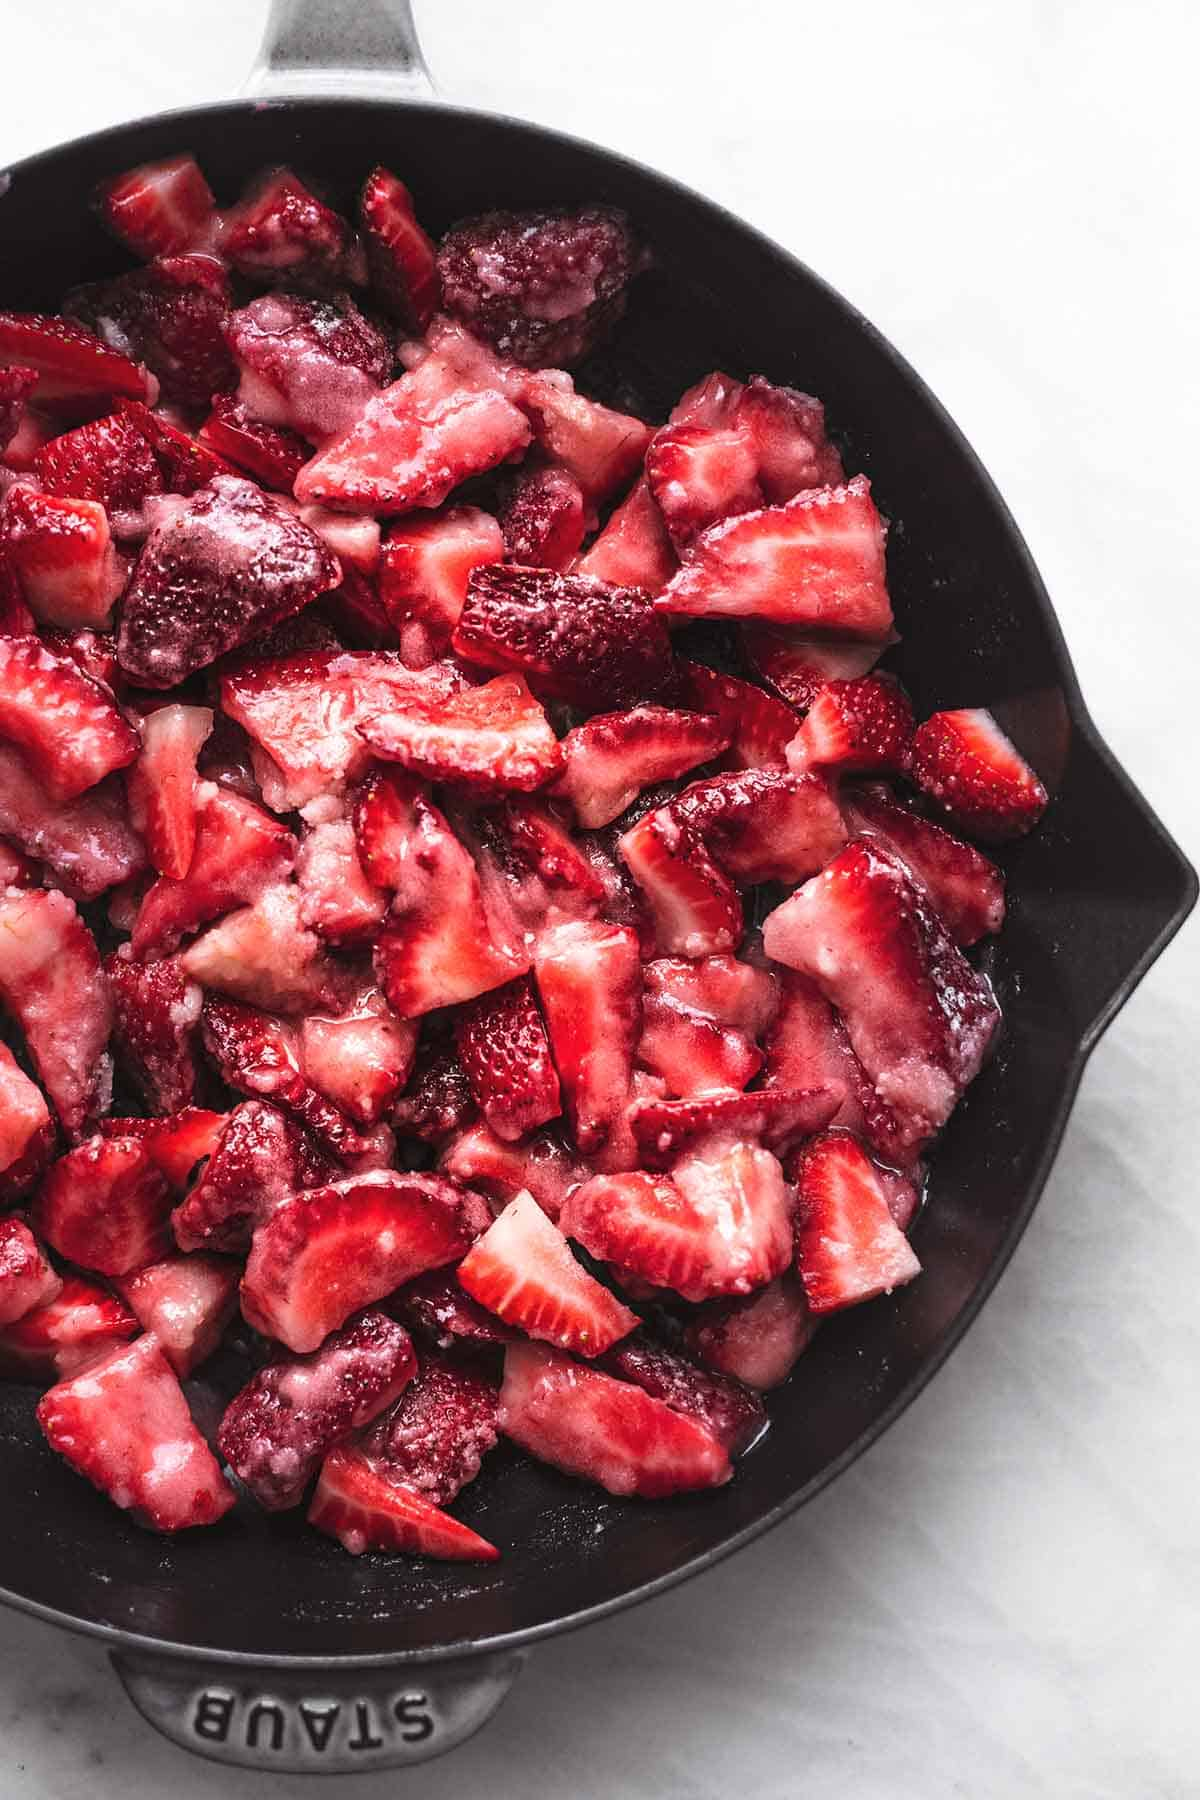 overhead view of sugared sliced strawberries in cast iron skillet